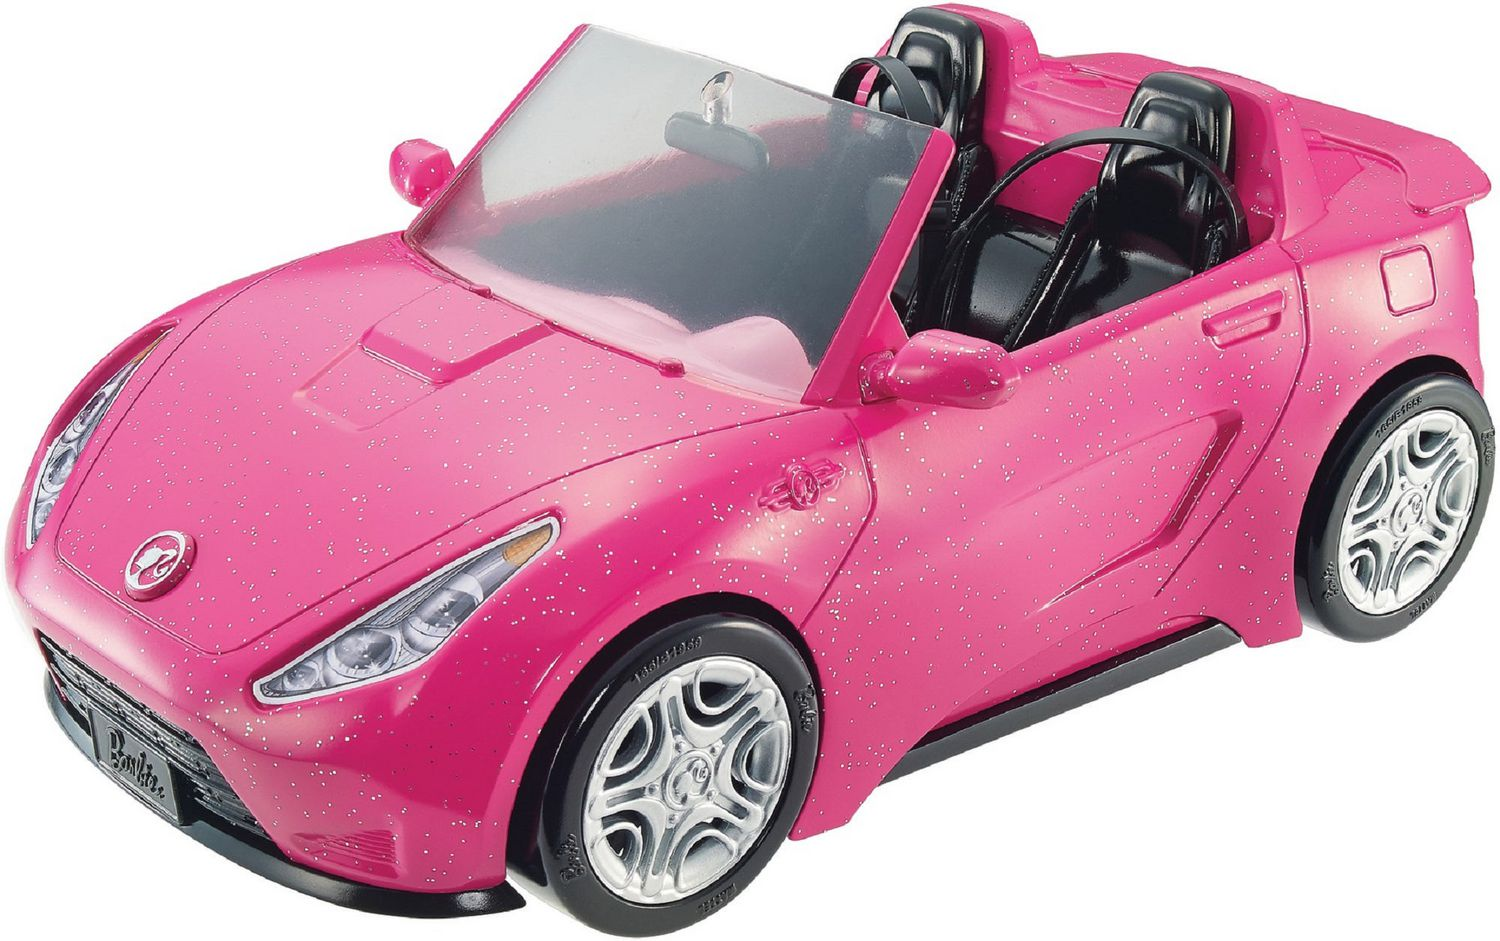 Barbie Glam Convertible Sparkly Pink Car Best For Ages 3 /& Up Doll Not Included